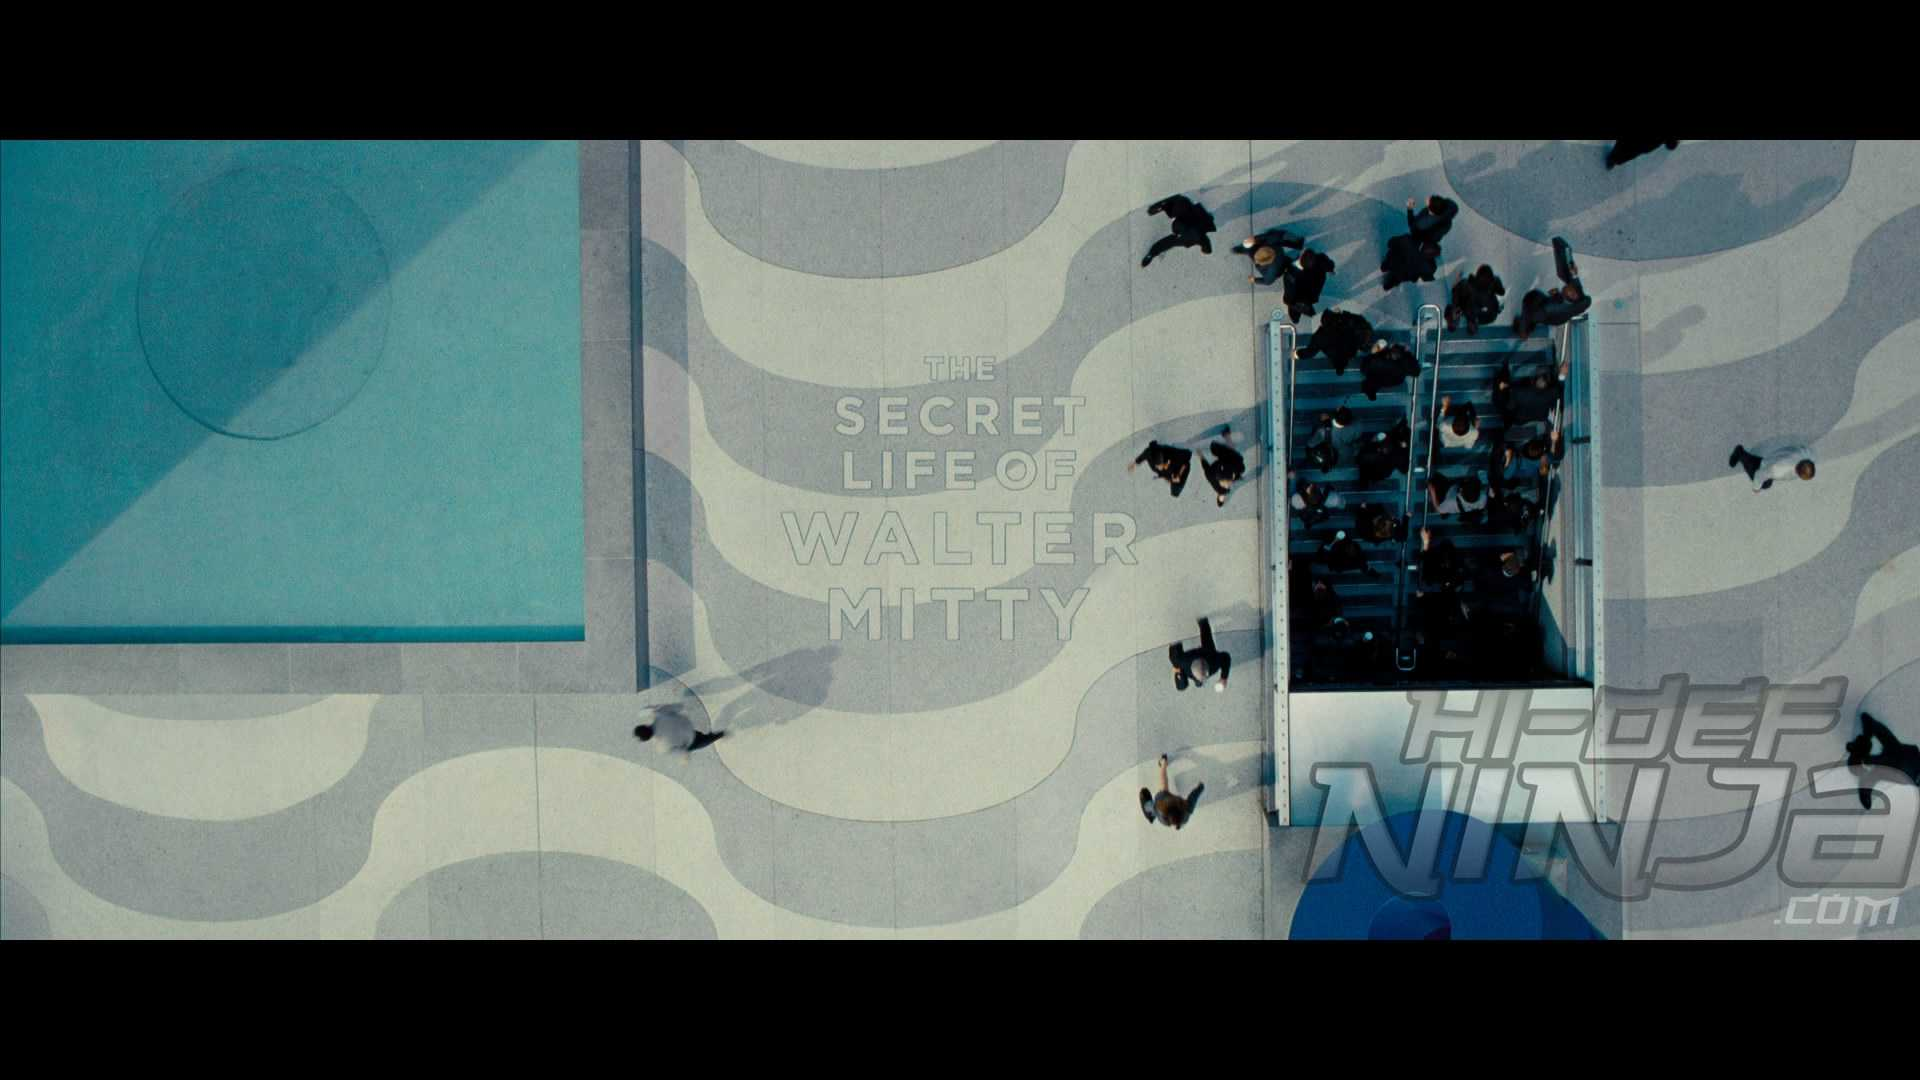 TheSecretLifeofWalterMitty-3